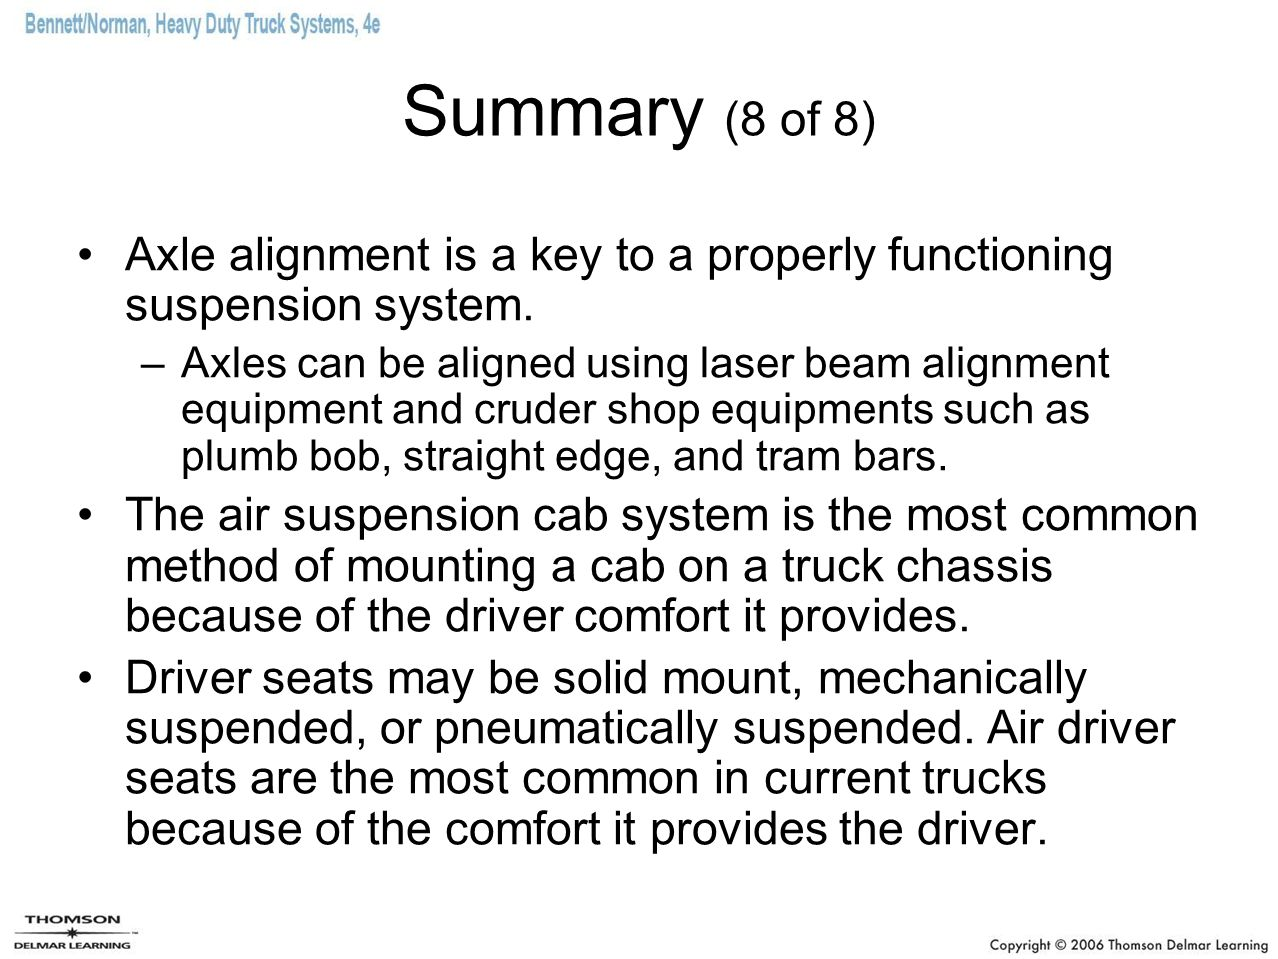 Summary (8 of 8) Axle alignment is a key to a properly functioning suspension system.